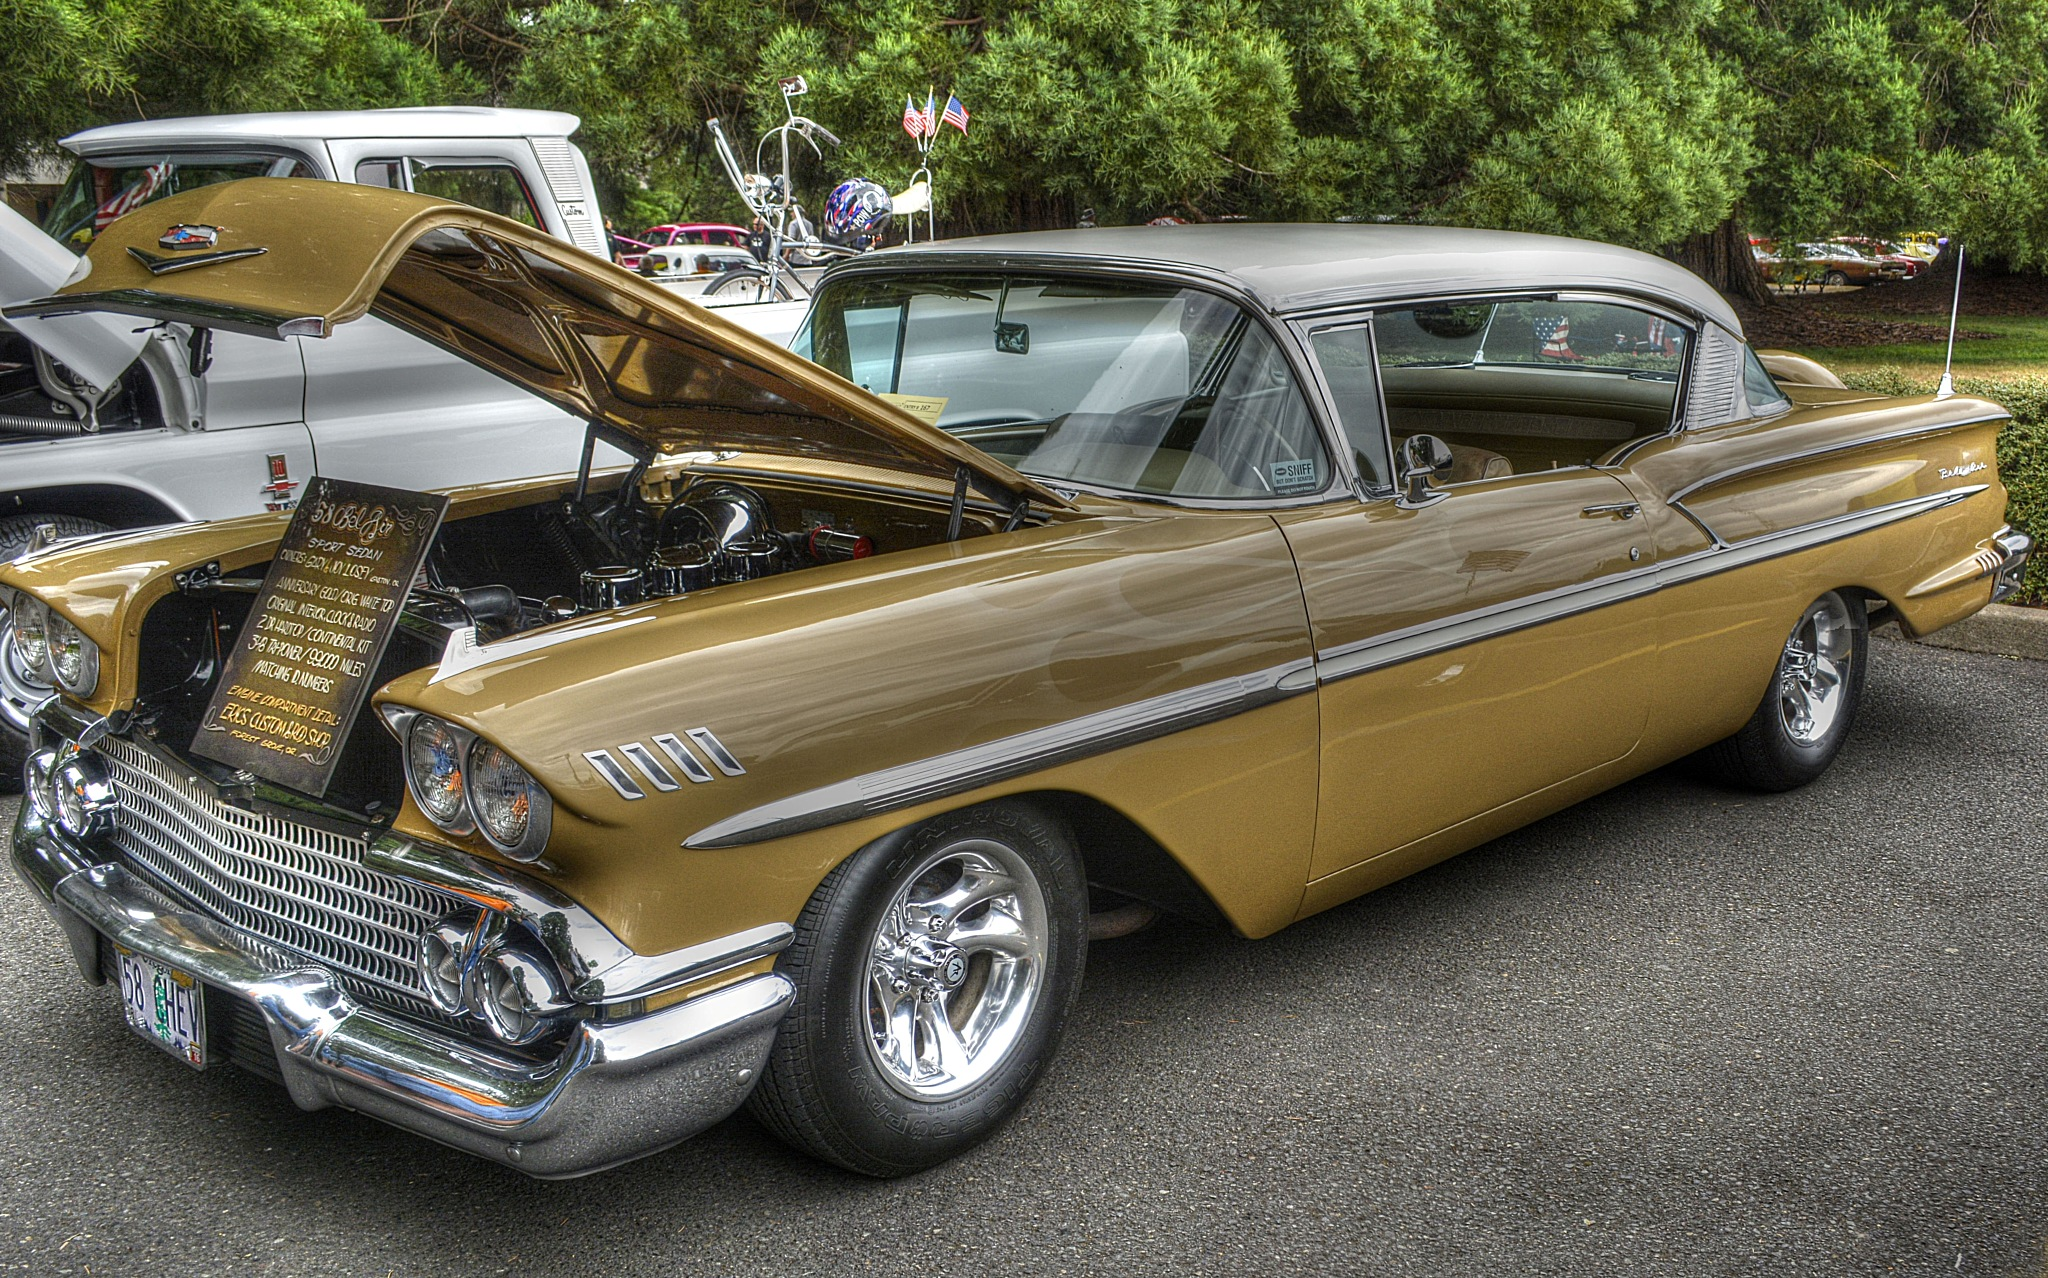 Chevy Bel Air 1958 by pscottwong